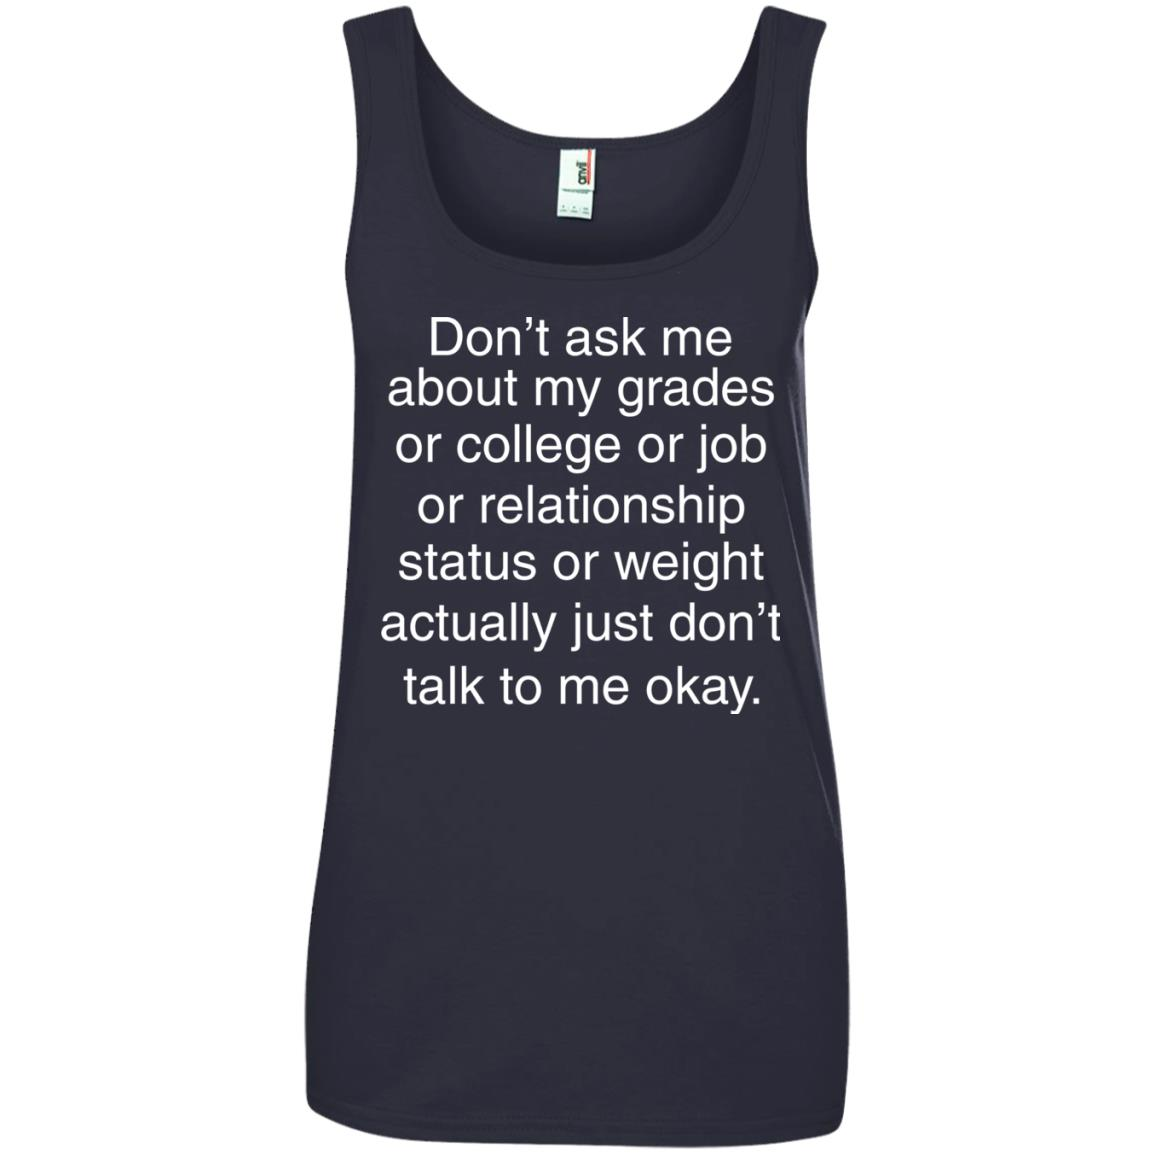 image 702px Don't ask me about my grades or college or job, just don't talk to me t shirt